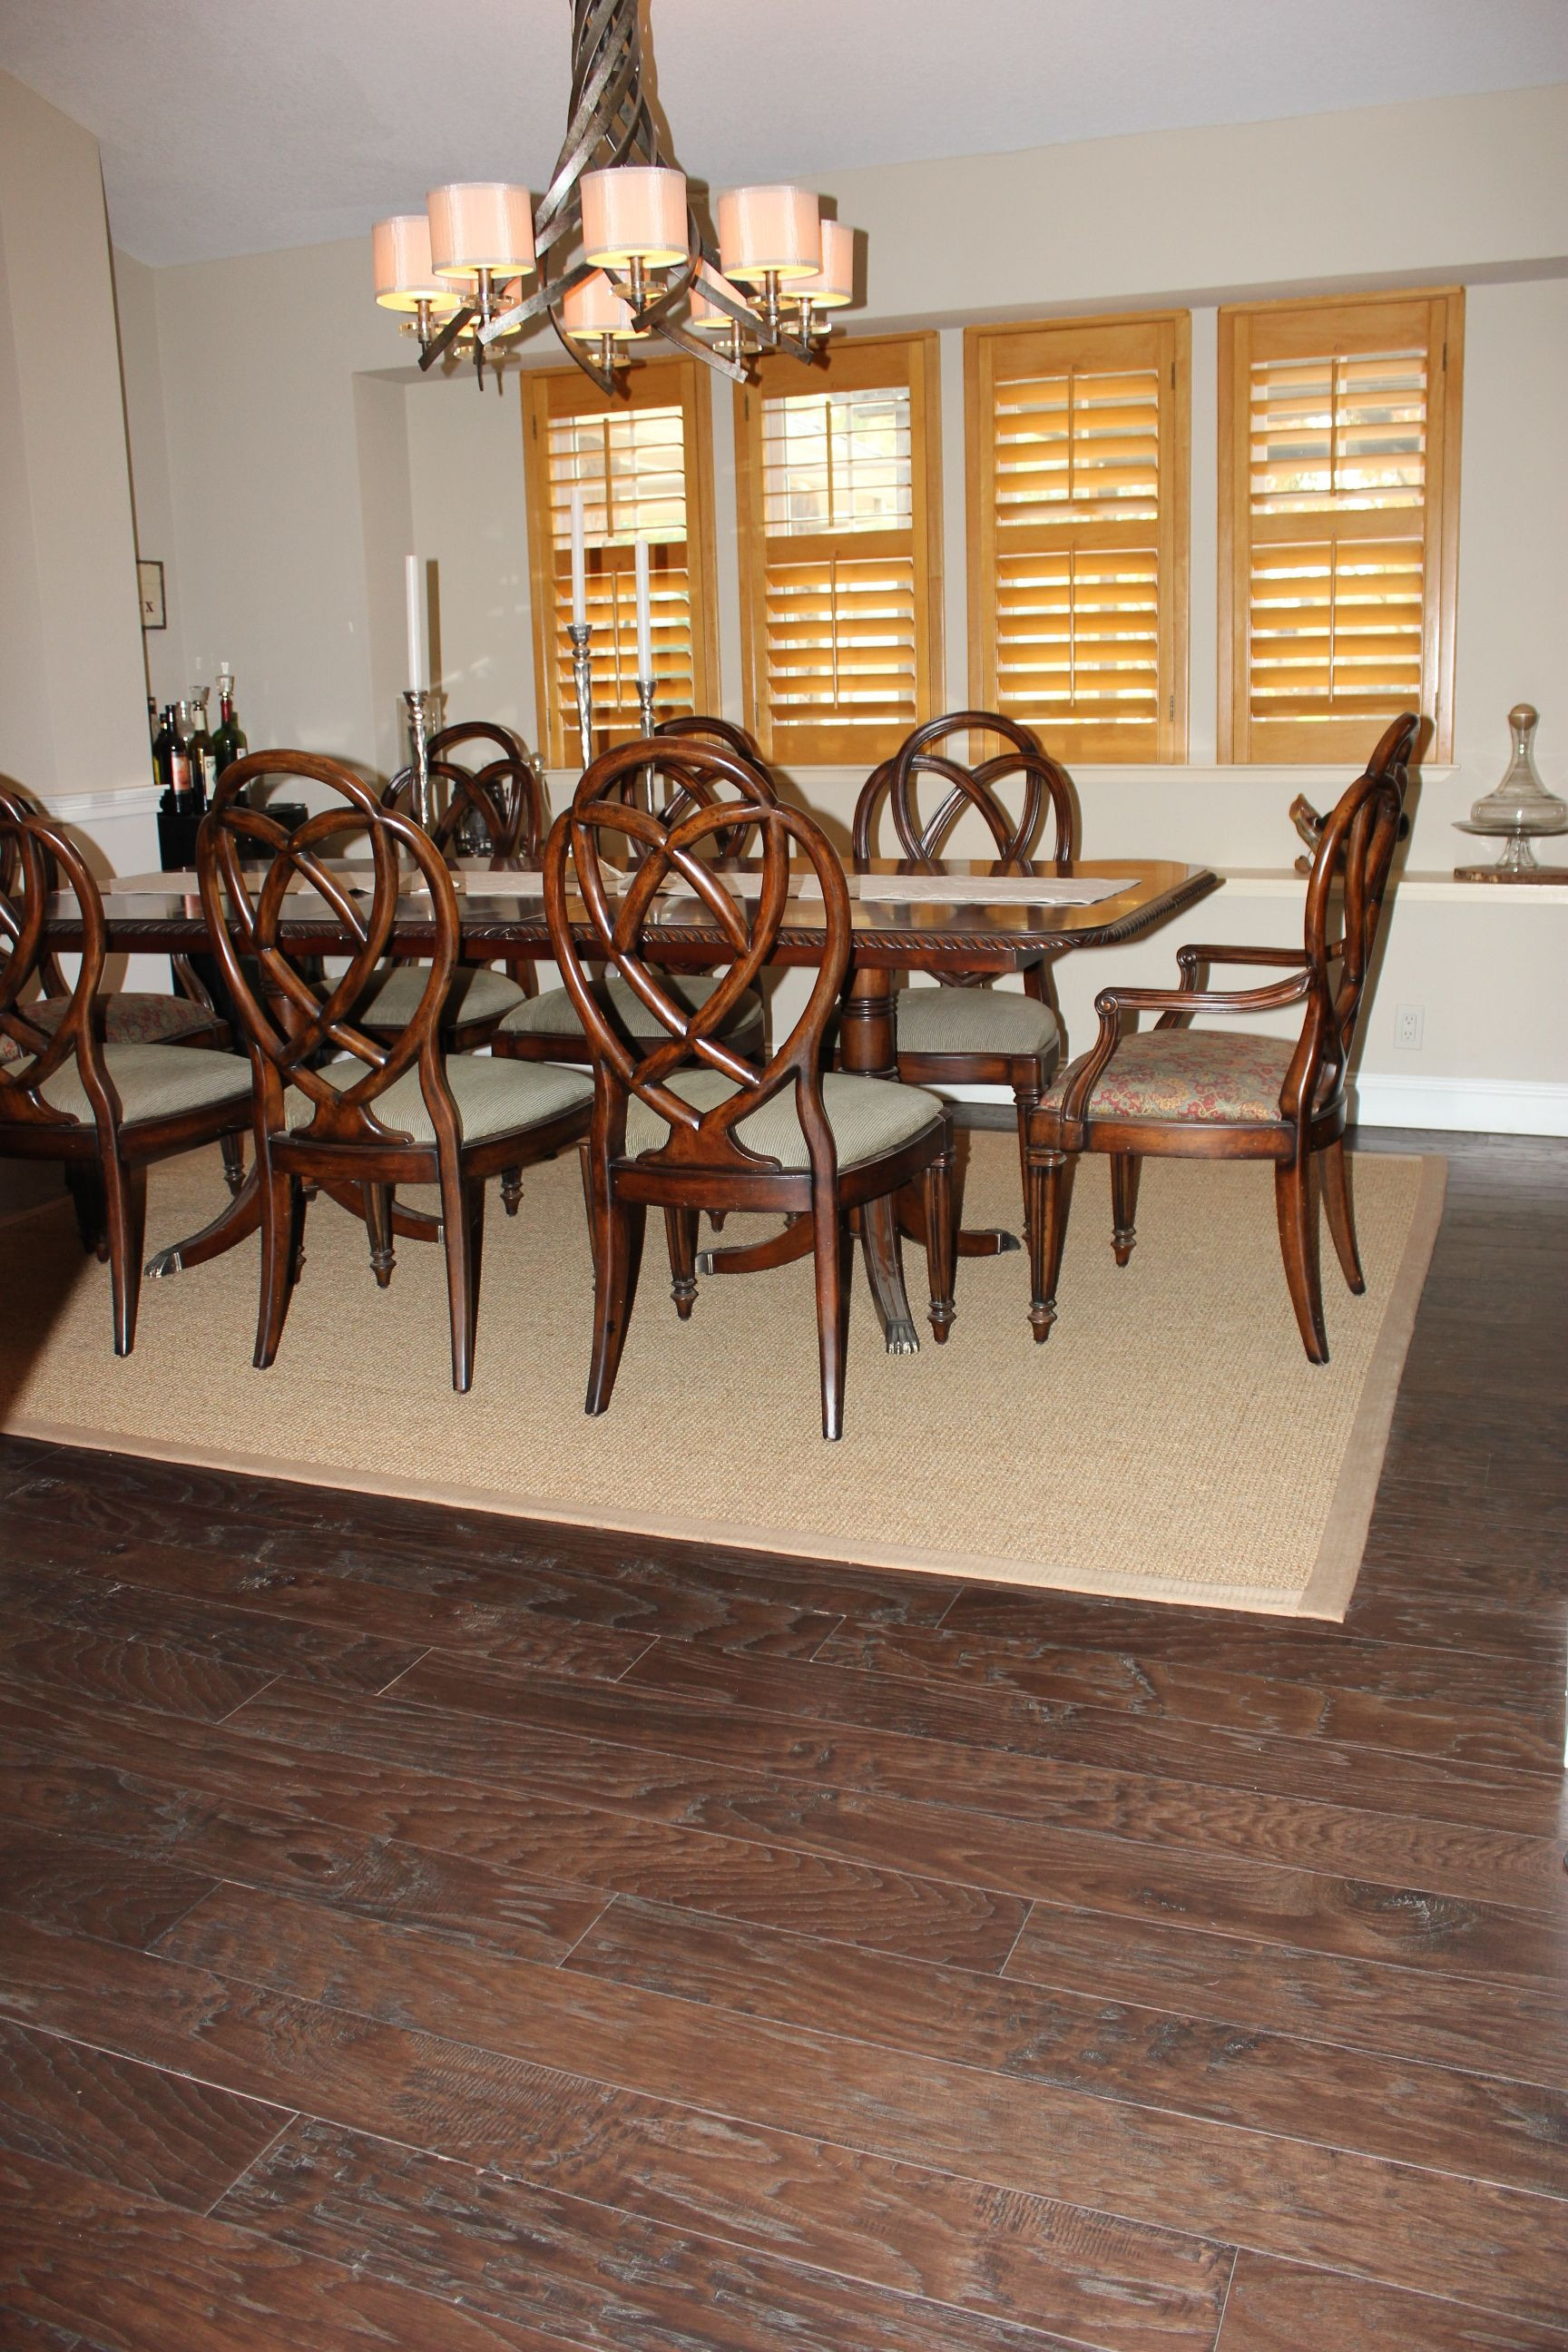 mohawk floorcare essentials hardwood laminate floor cleaner of shaw nottoway hickory hardwood color weathered saddle installed by with shaw nottoway hickory hardwood color weathered saddle installed by simas